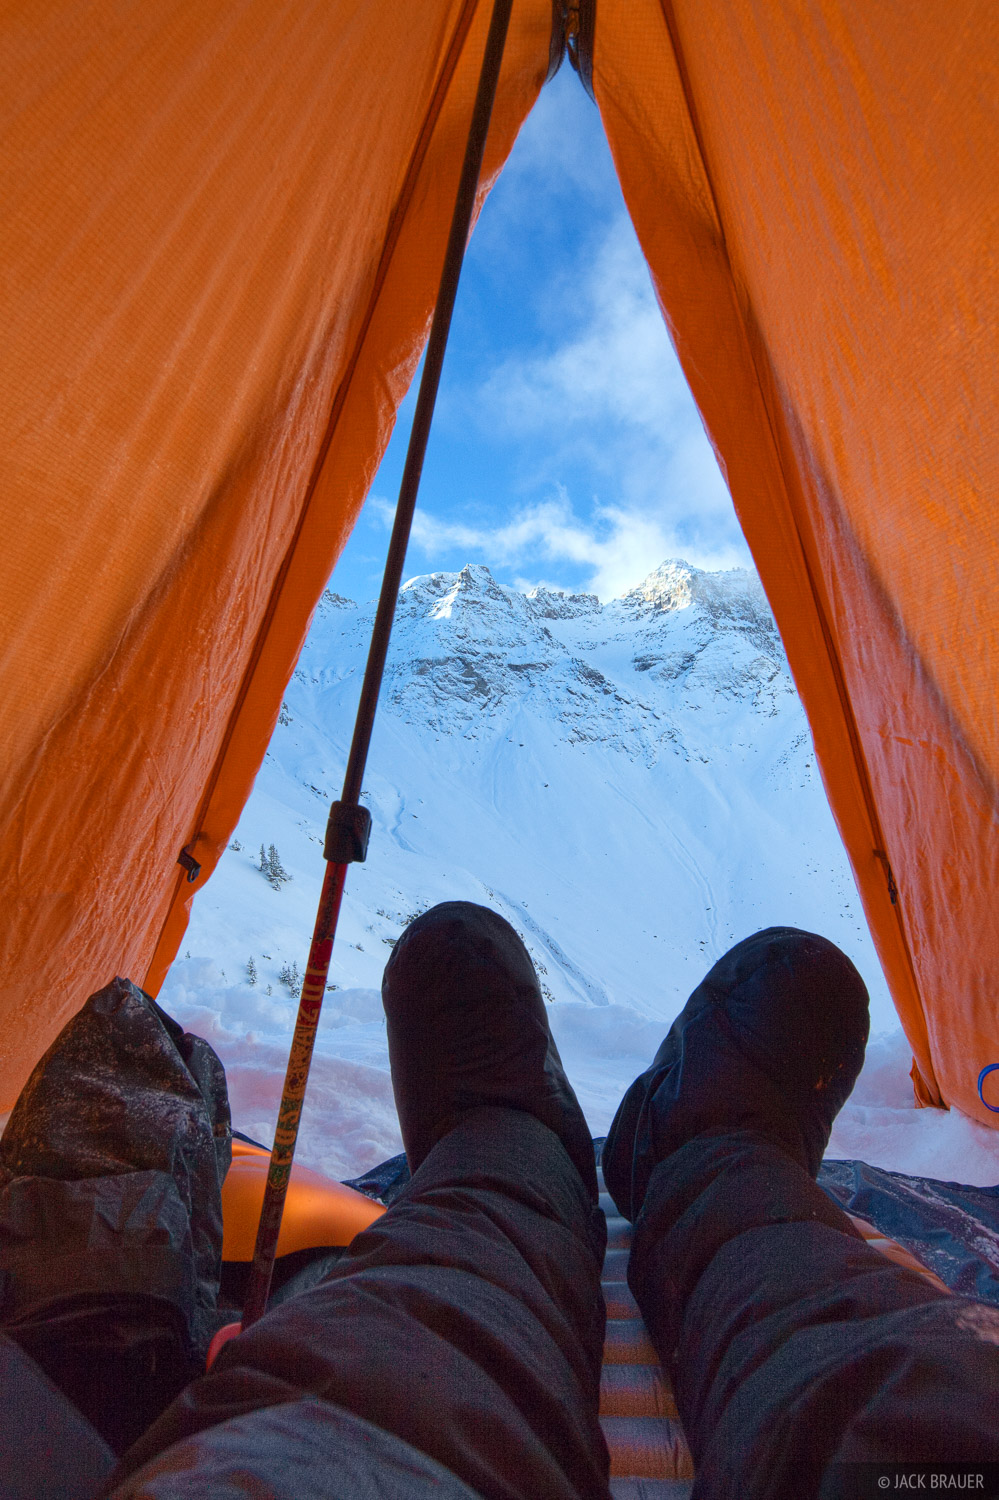 Relaxing in my winter tent high in the Sneffels Range - October.